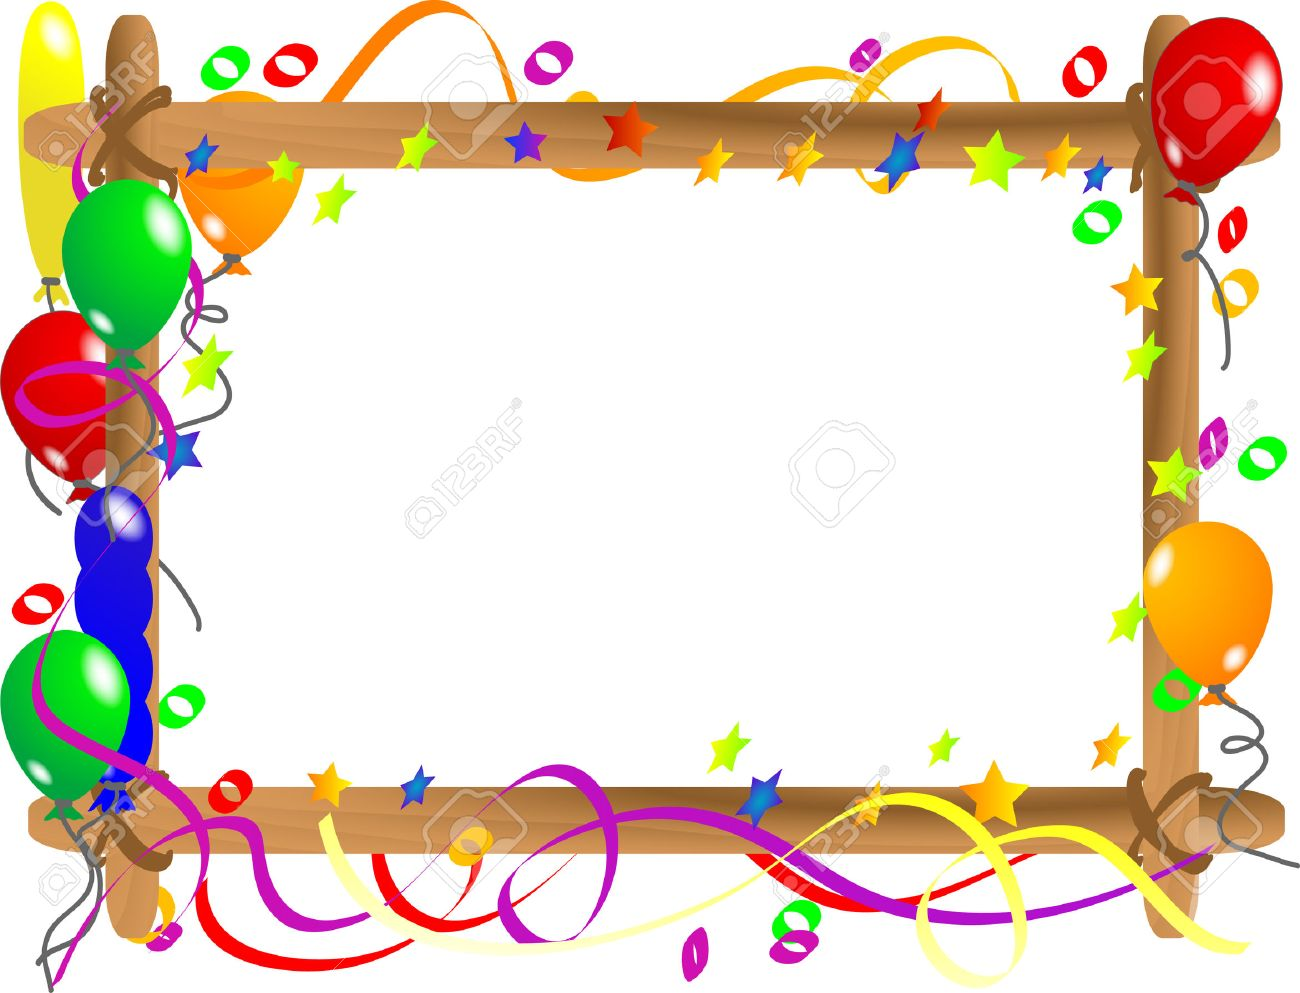 vector wooden frame with colorful balloons